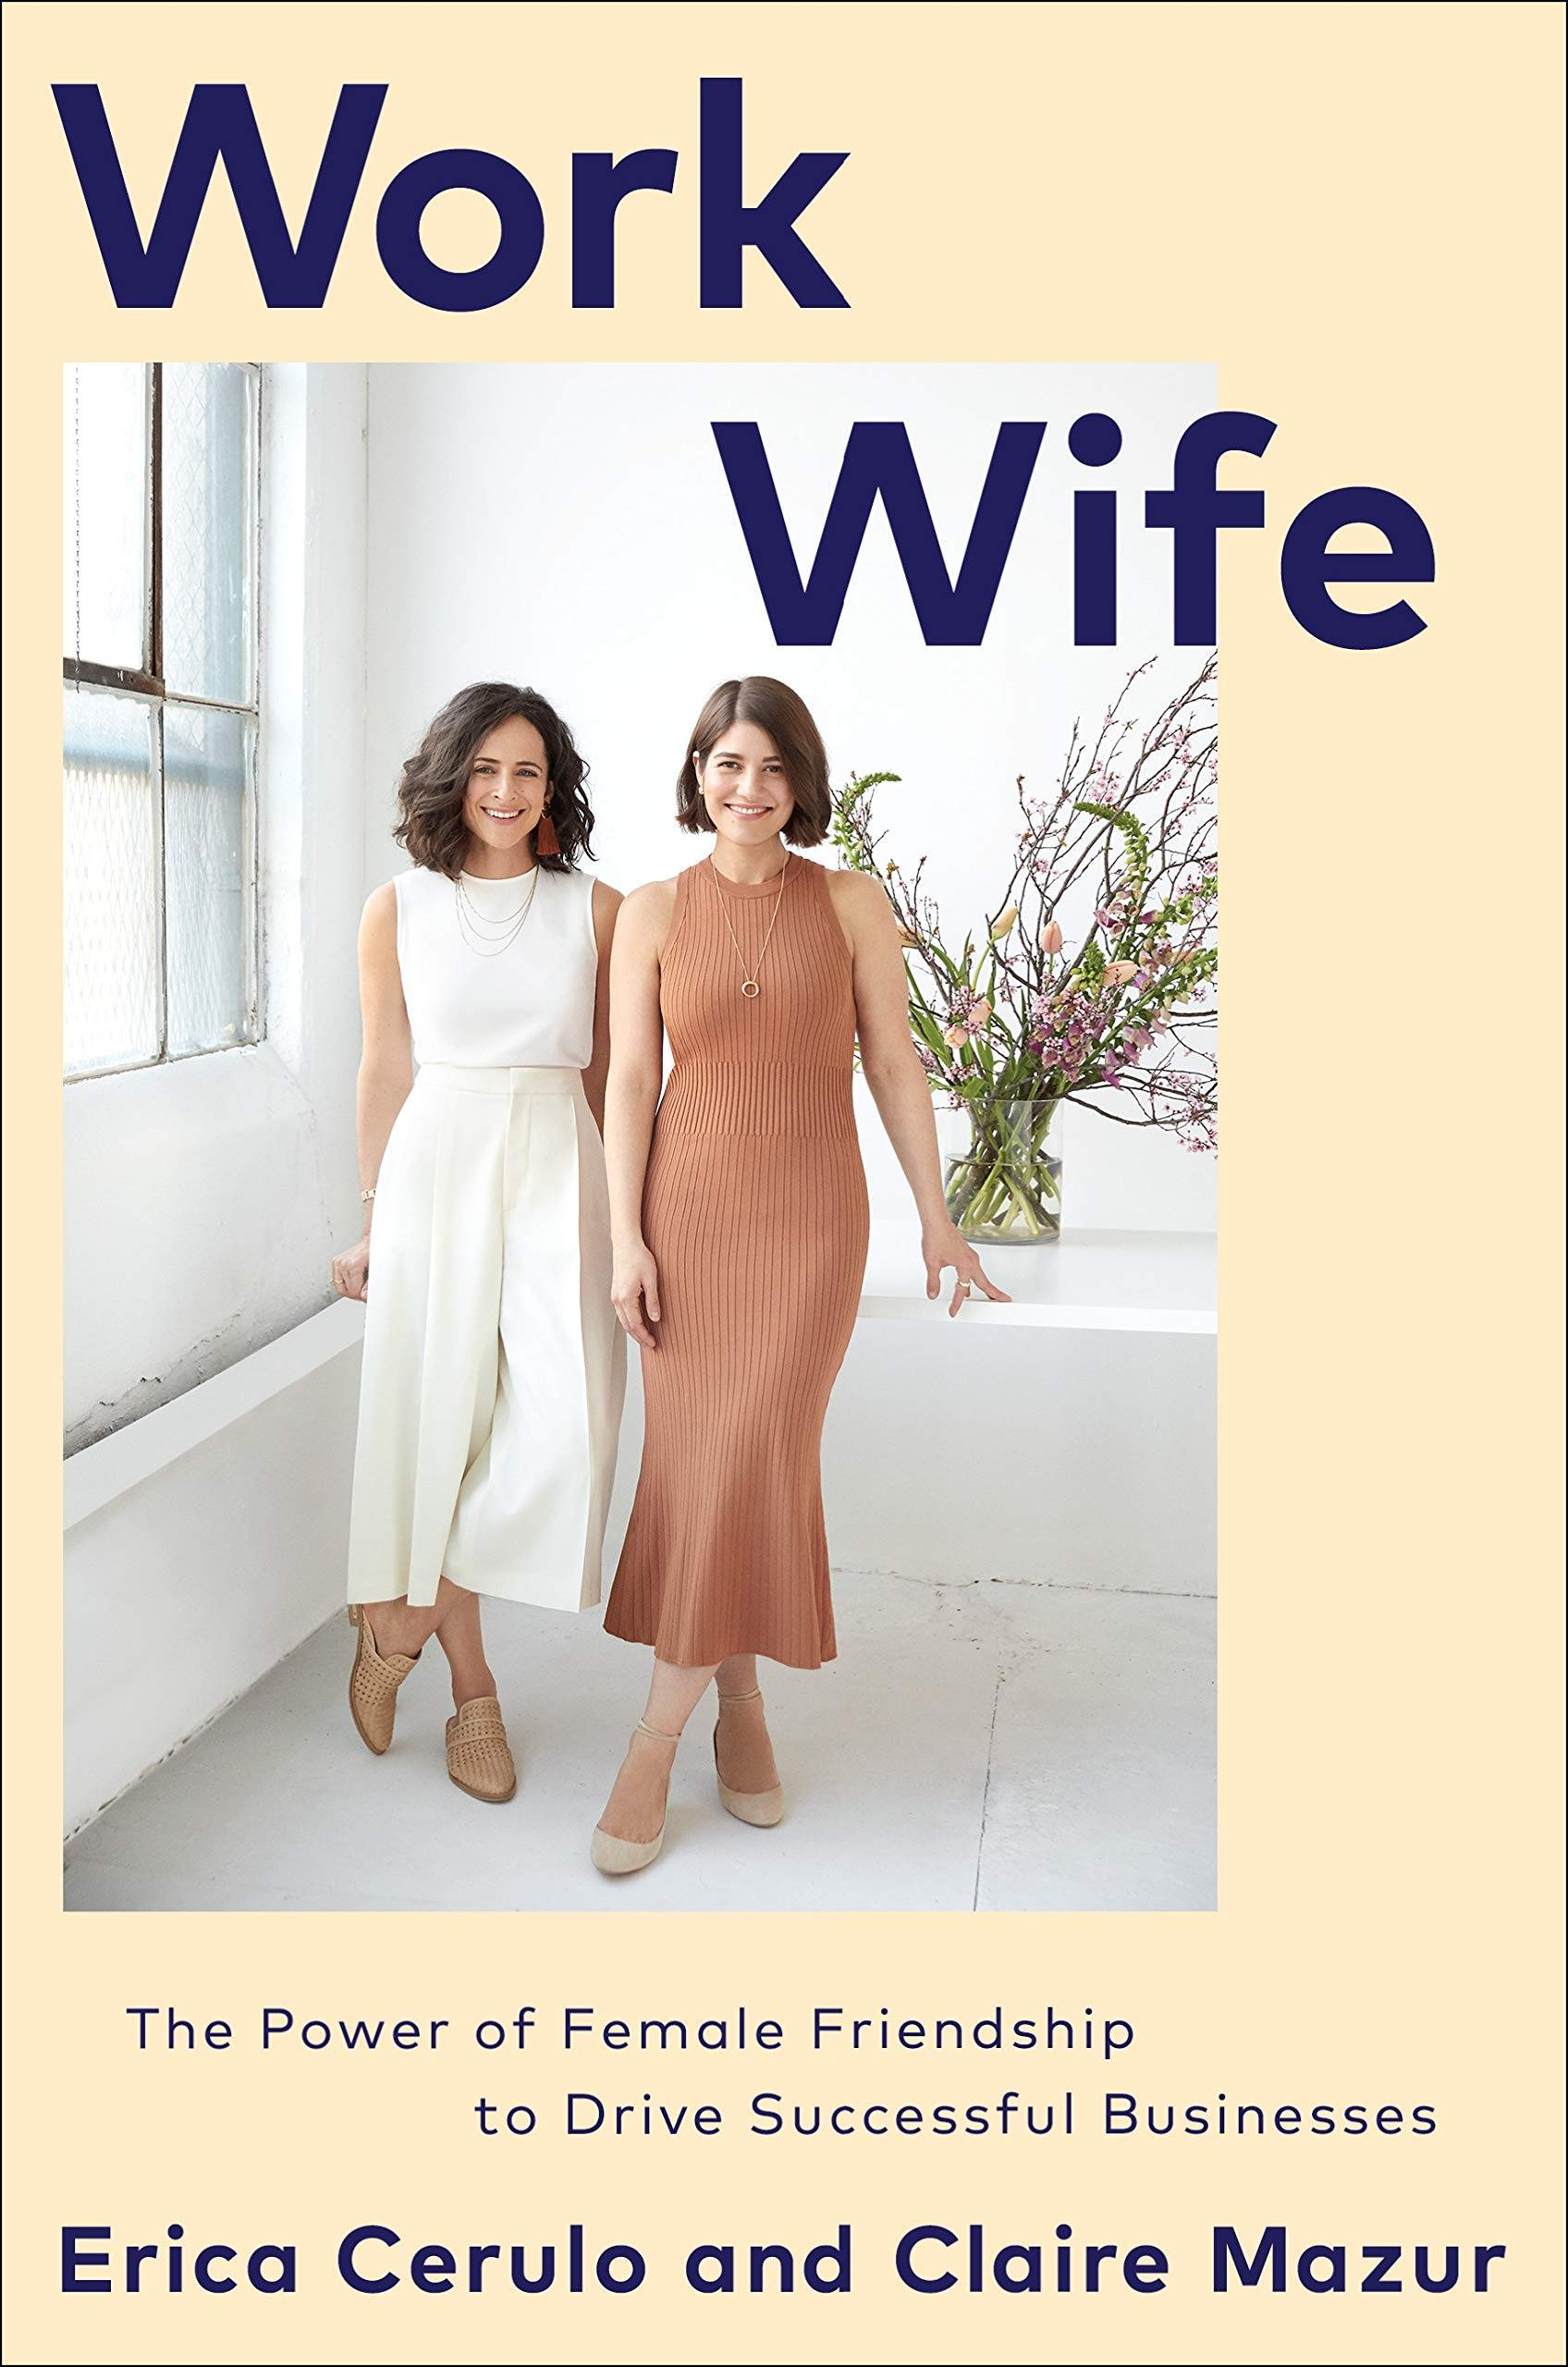 Work Wife by Erica Cerulo and Claire Mazur